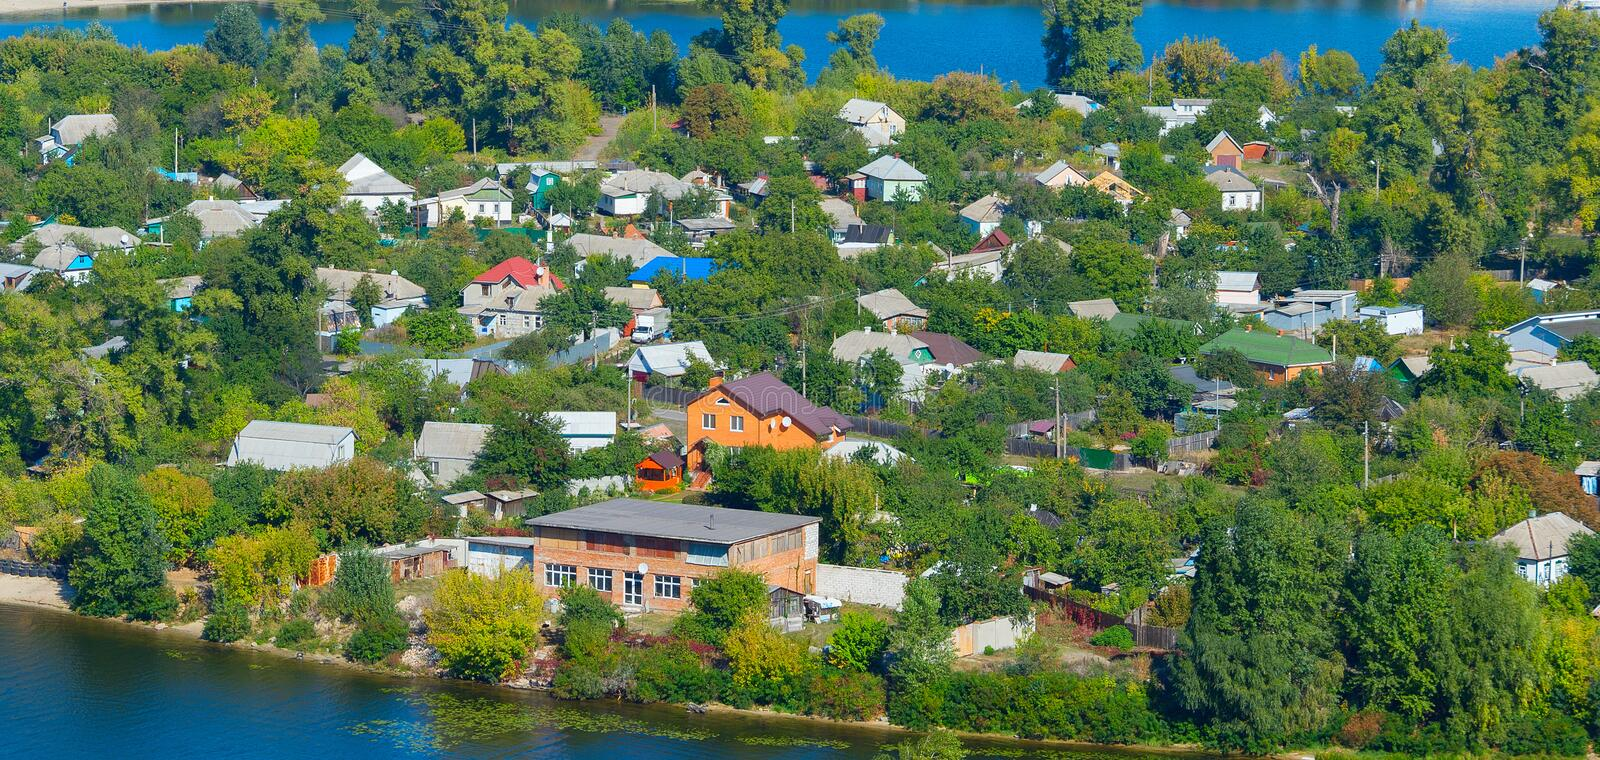 Aerial houses Dnipro river Kyiv. Private housing area on green peninsula at Dnieper river. Kiev, Ukraine stock images